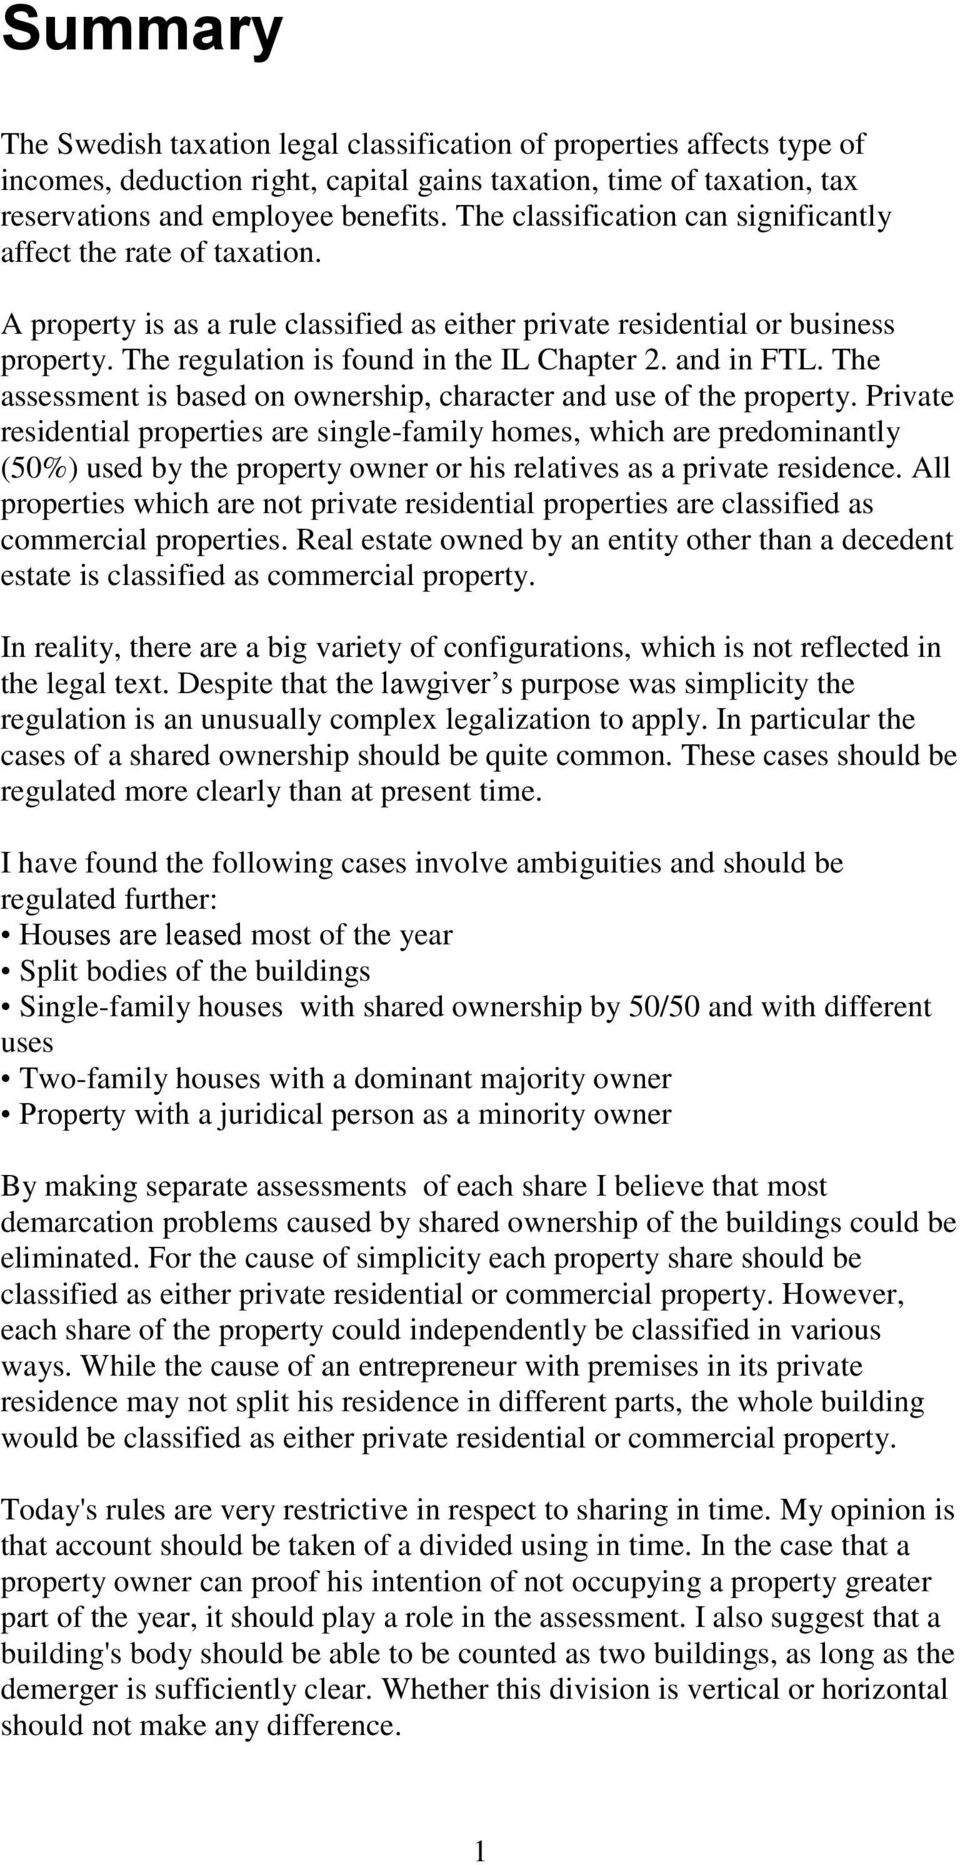 and in FTL. The assessment is based on ownership, character and use of the property.